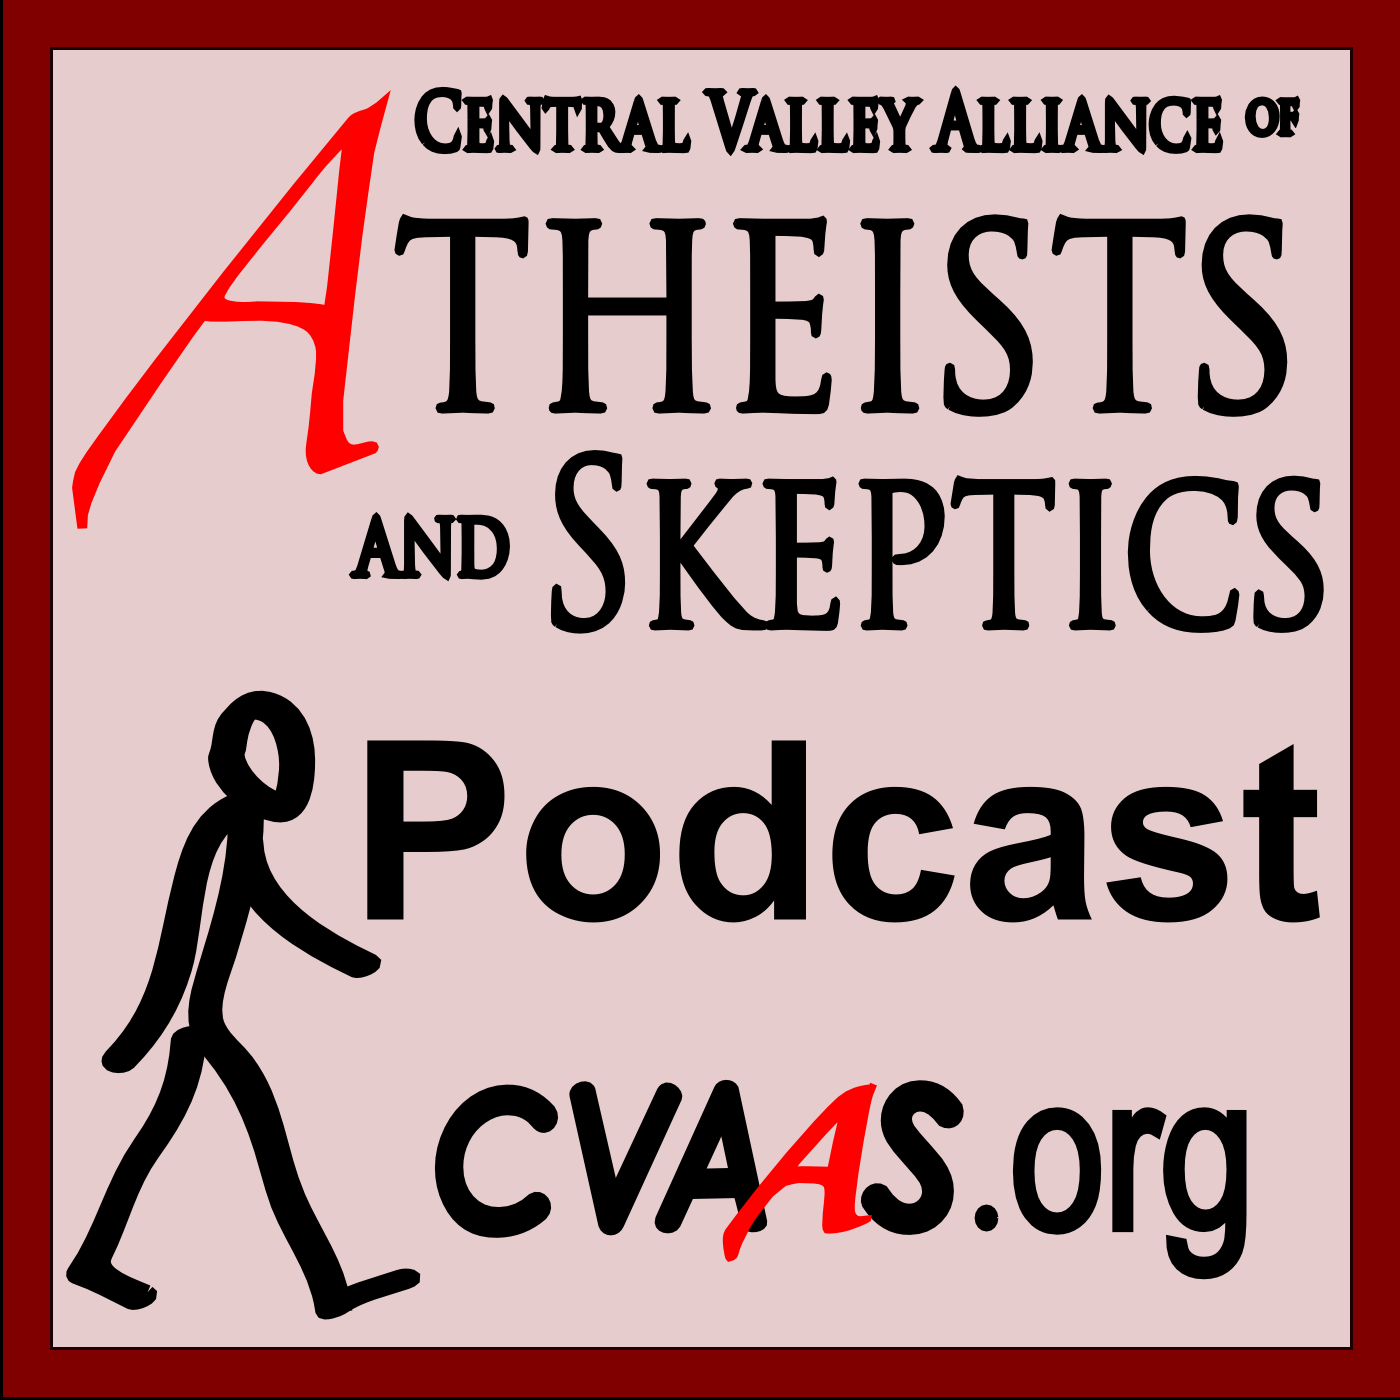 CVAAS podcasts